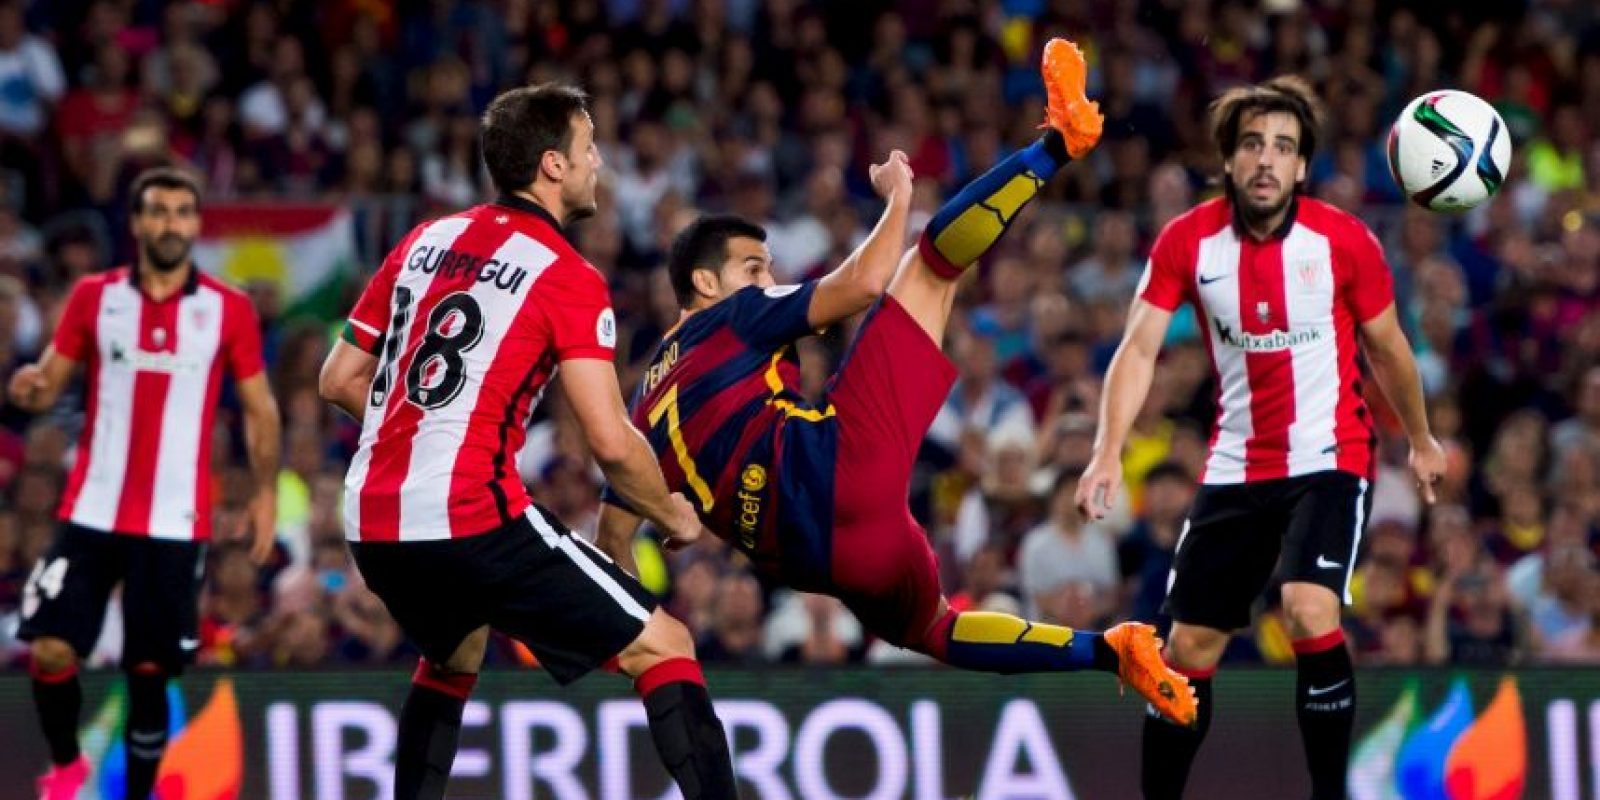 Athletic Club vs. Barcelona/ 18:30 horas de España/ Estadio San Mamés Foto: Getty Images